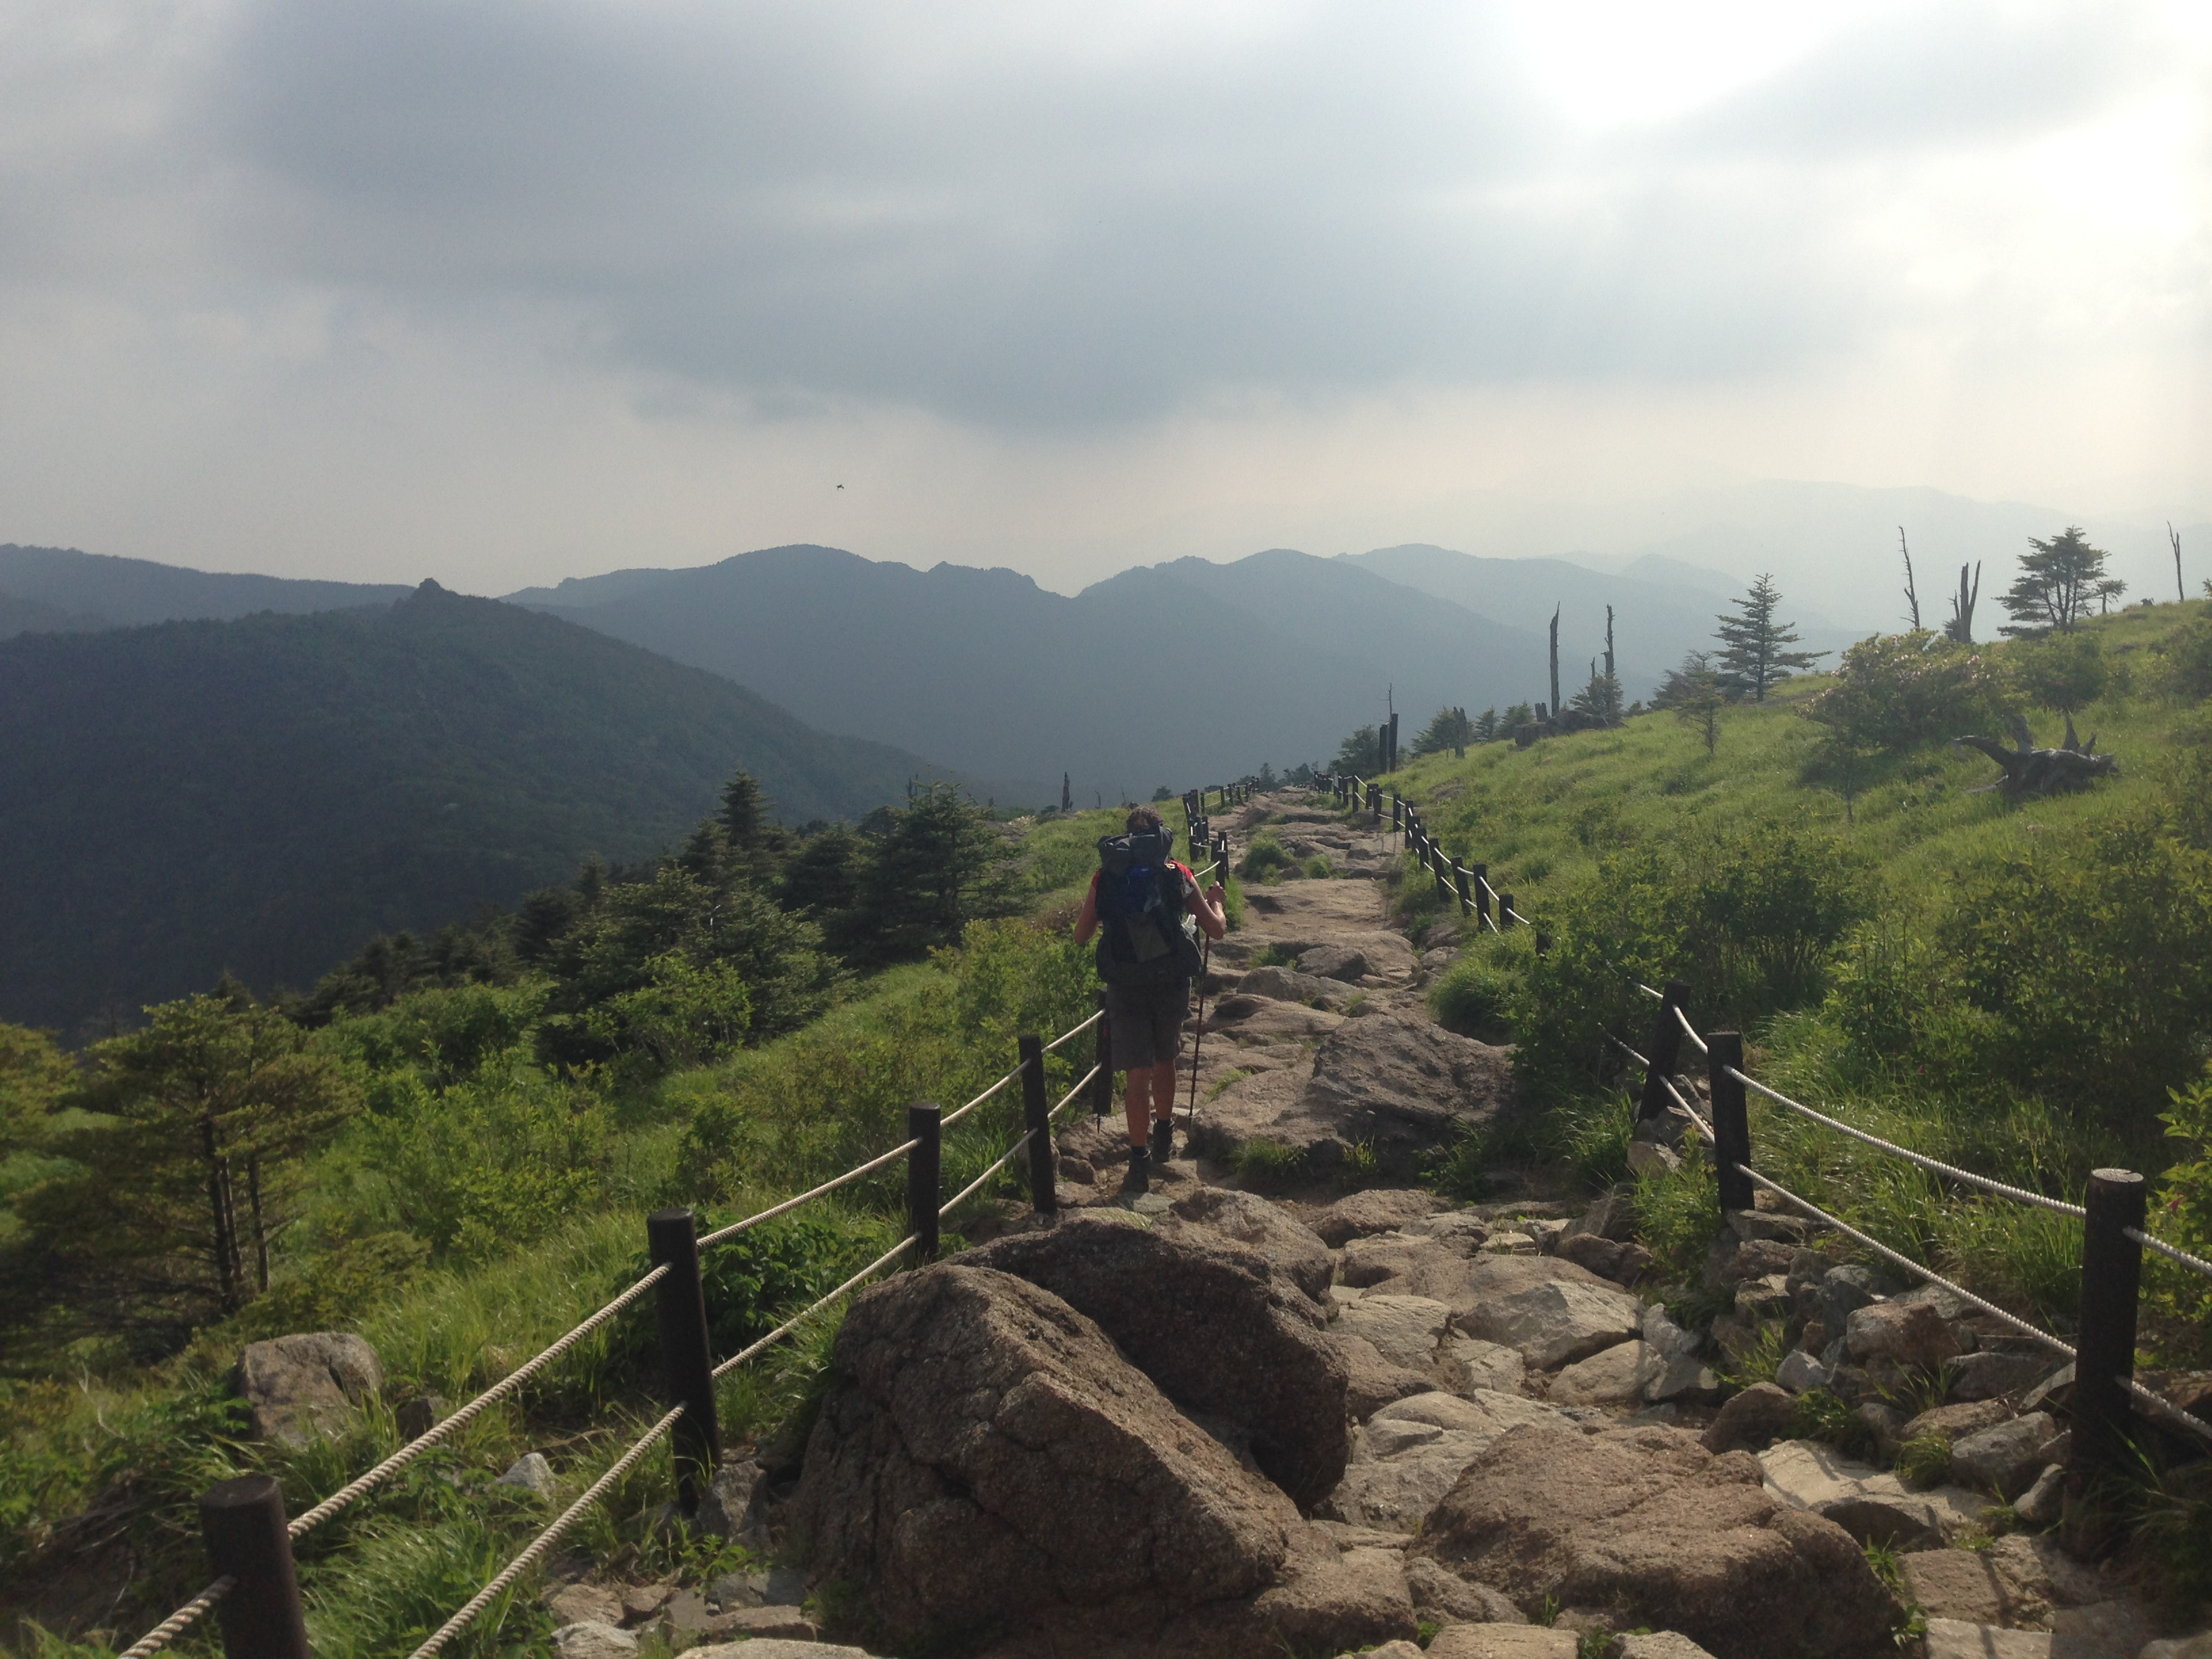 Hiking in Jiri-San National Park, at the southern end of the trail.